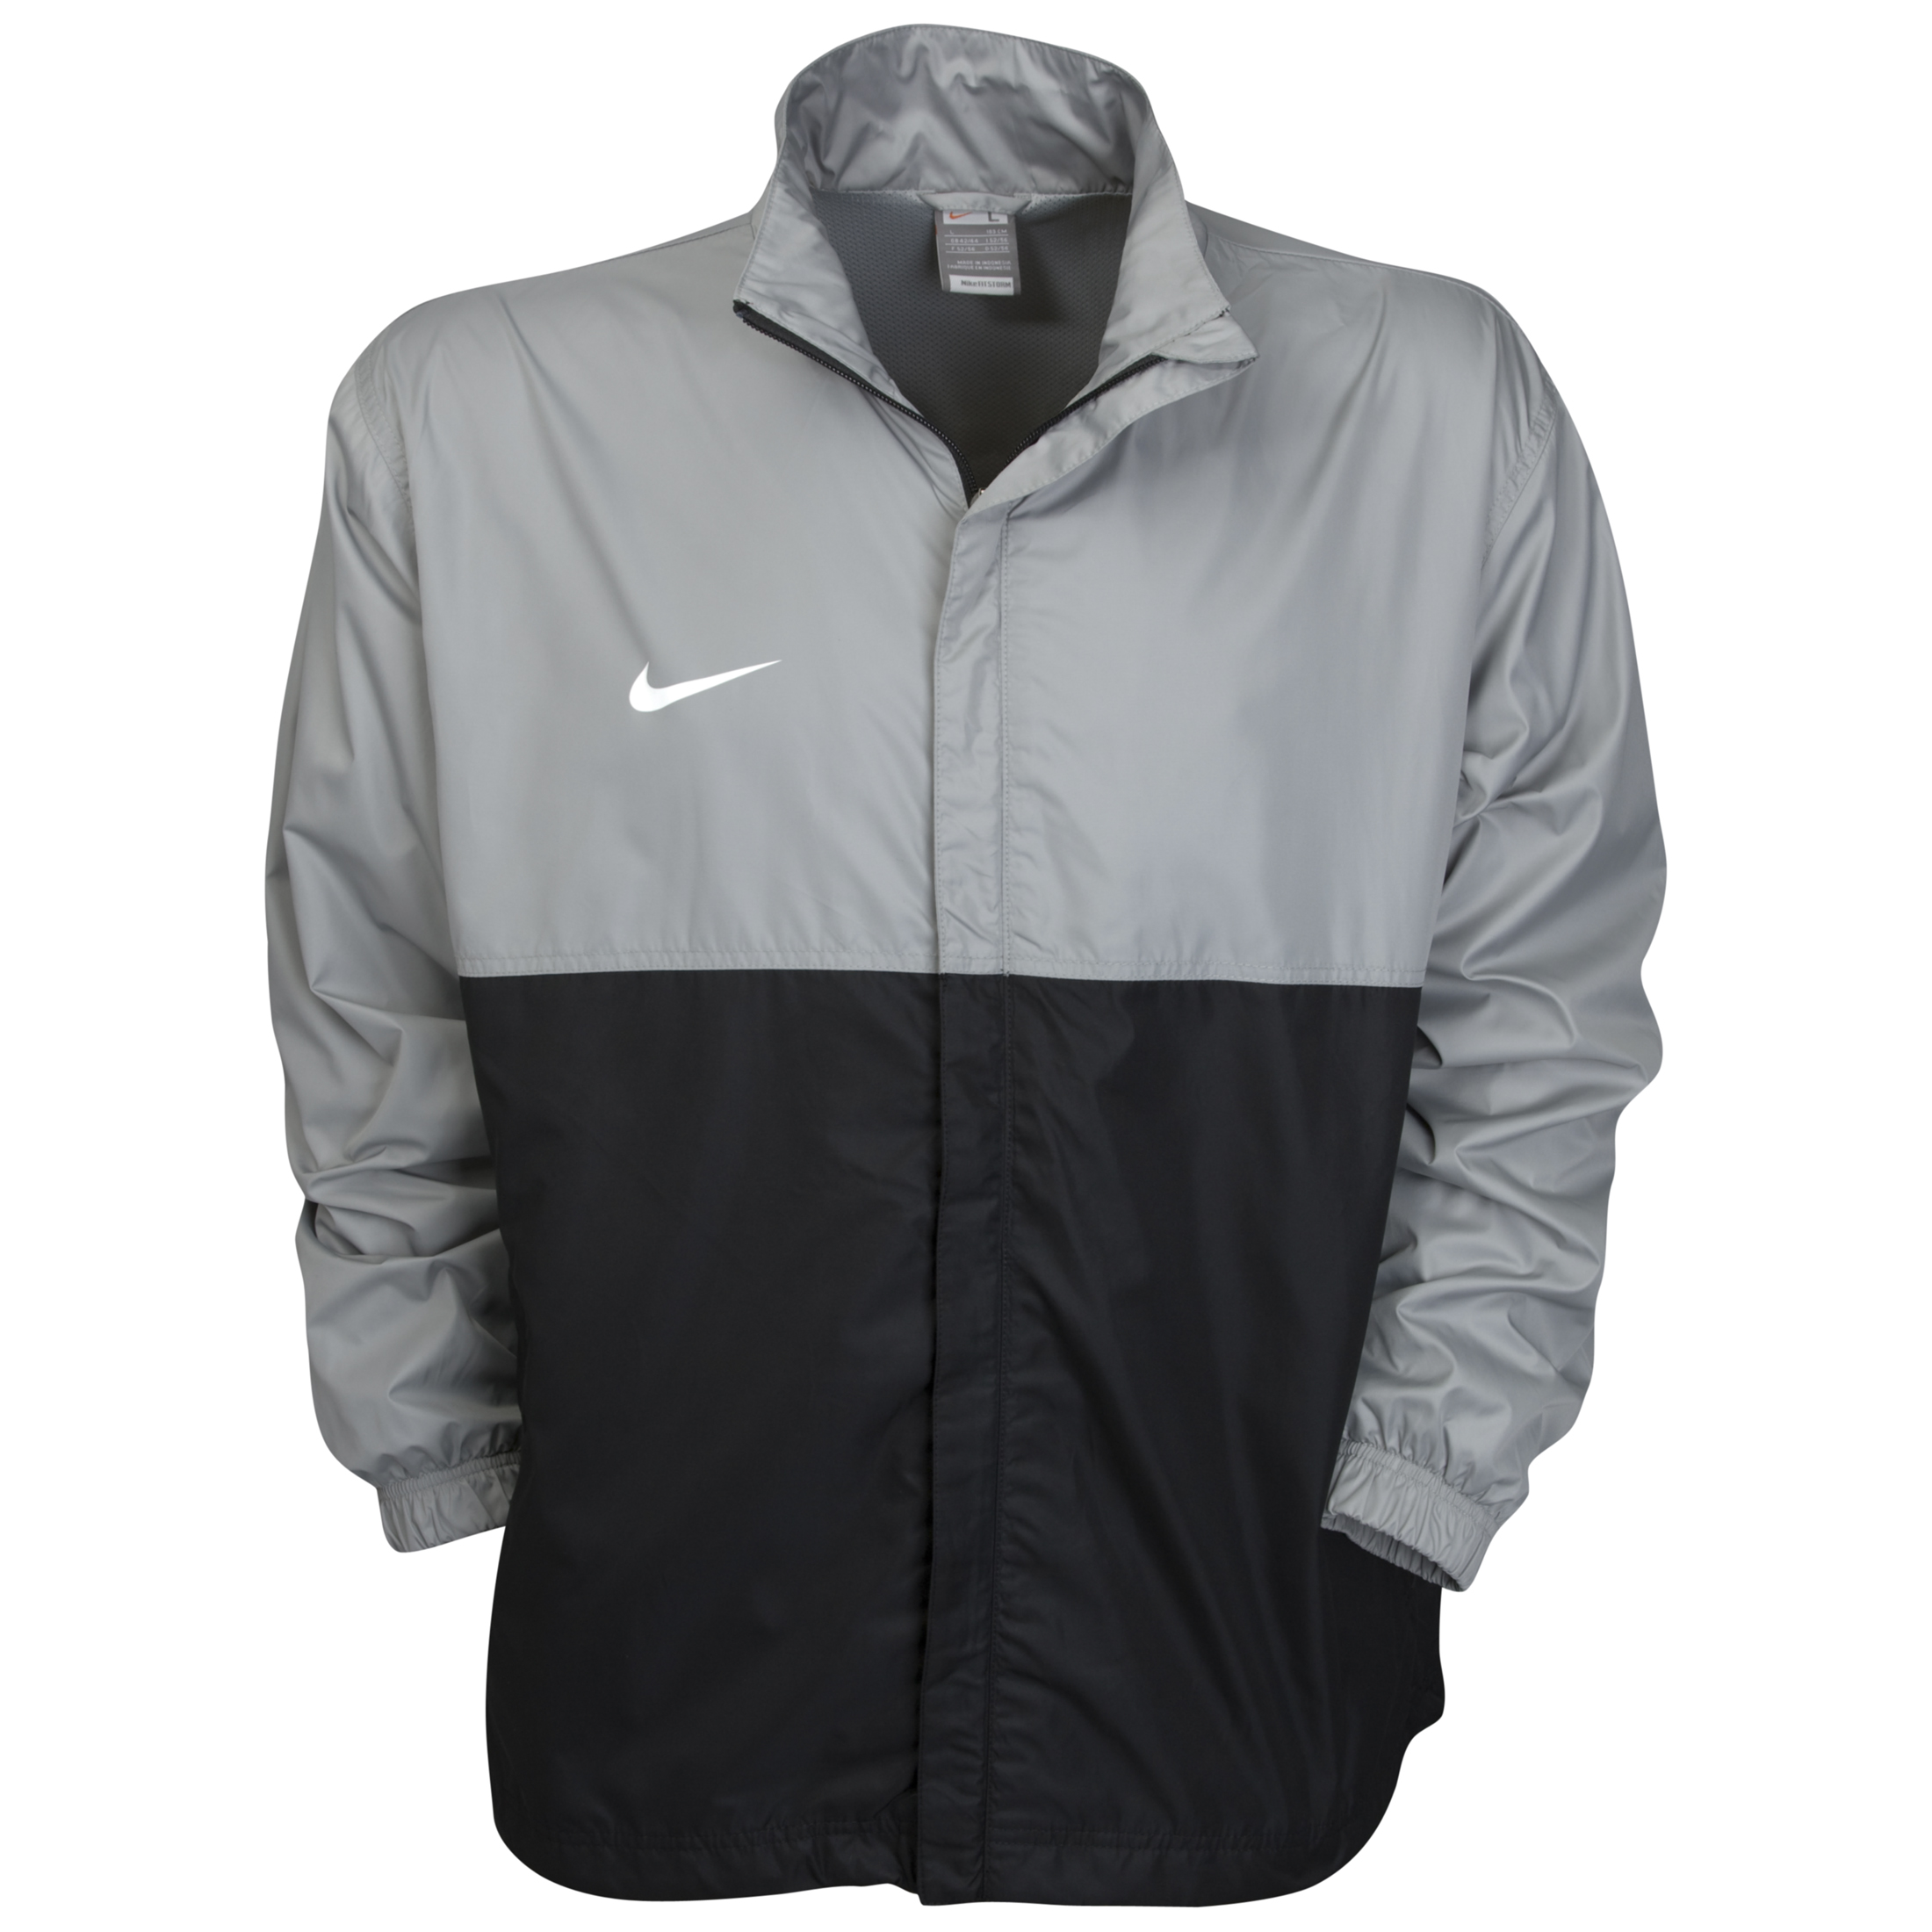 Nike Club Clima-Fit Rain Jacket - Silver/Black/White